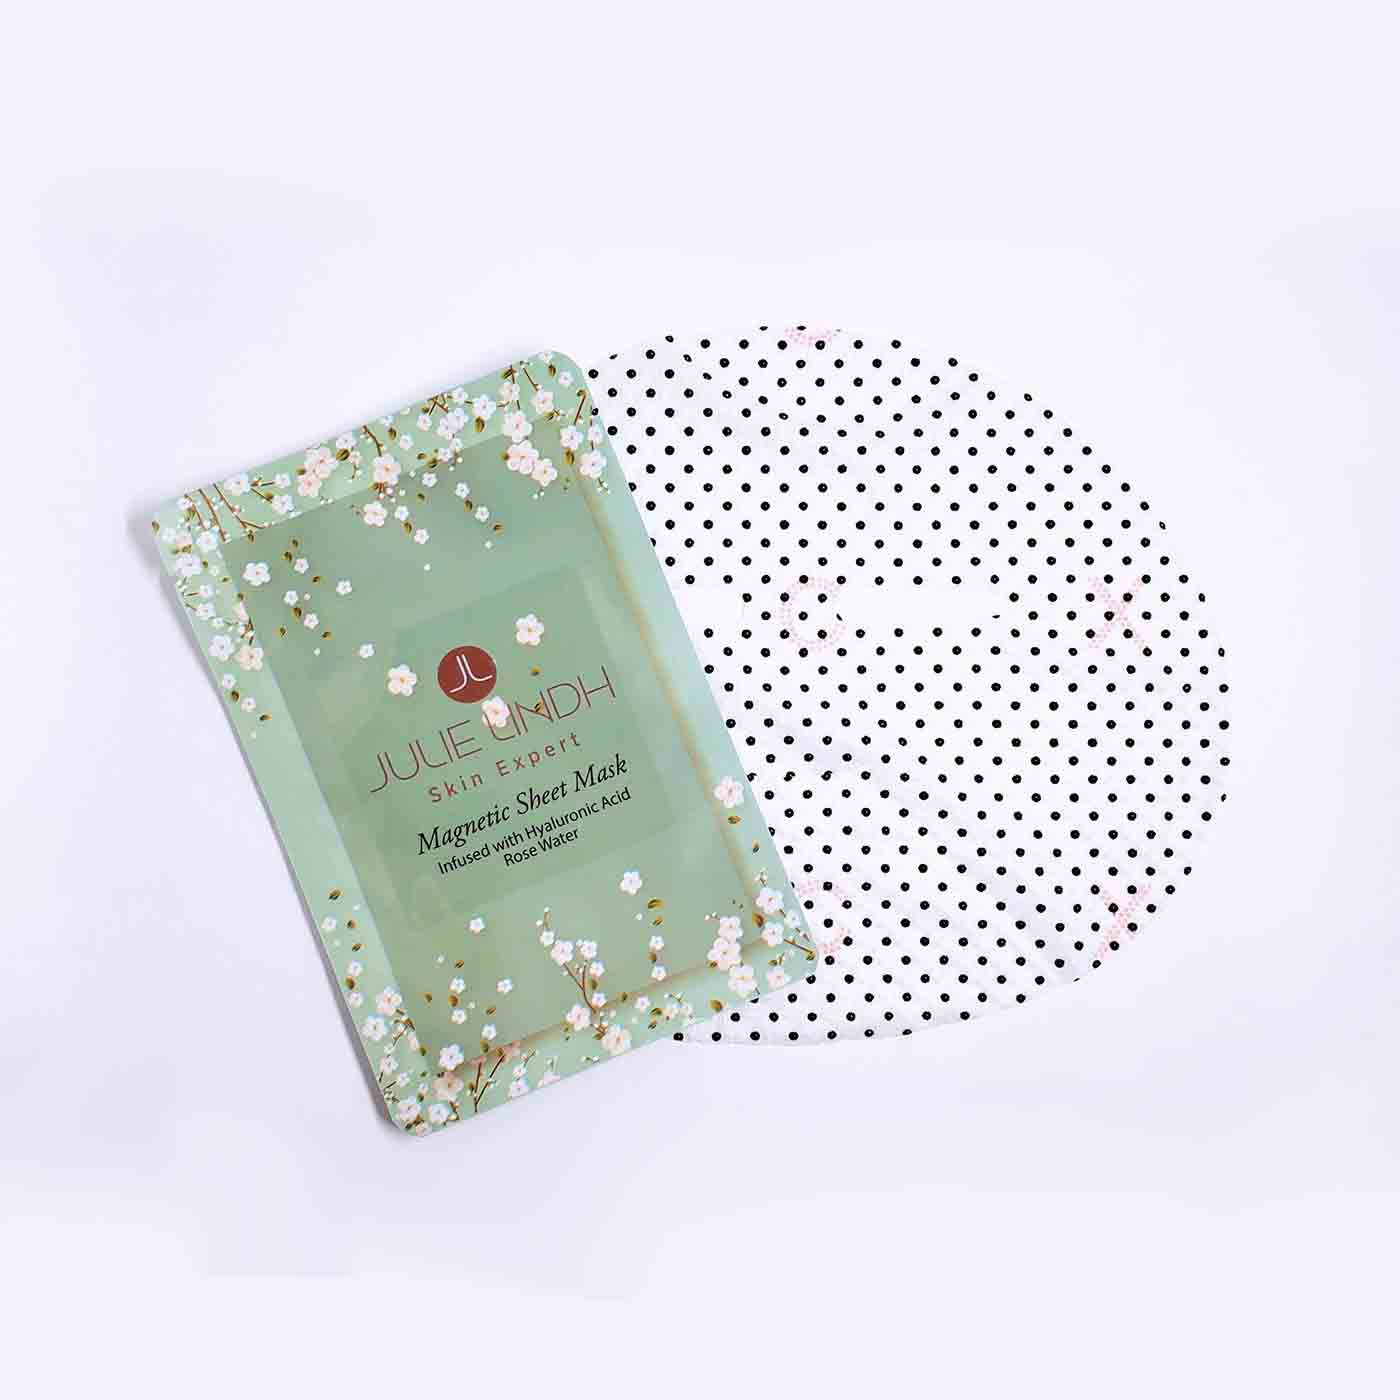 Bio-Magnetic Functional Sheet Mask